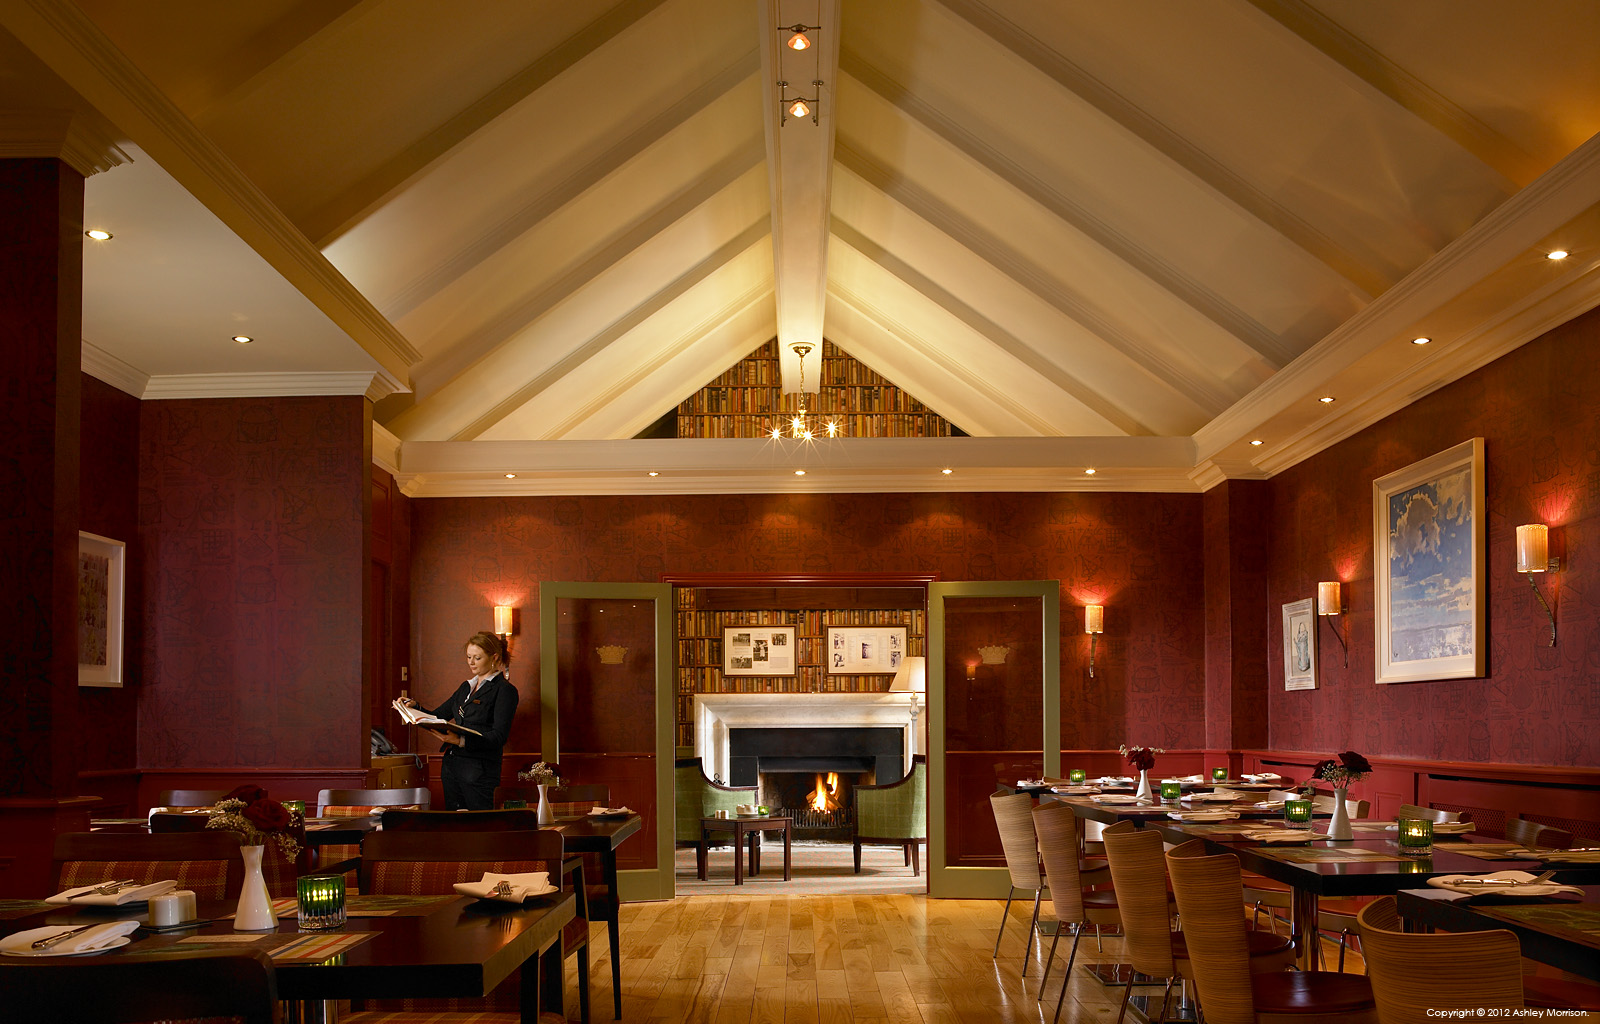 The Fig Tree restaurant in the Club House at Dromoland Castle in County Clare